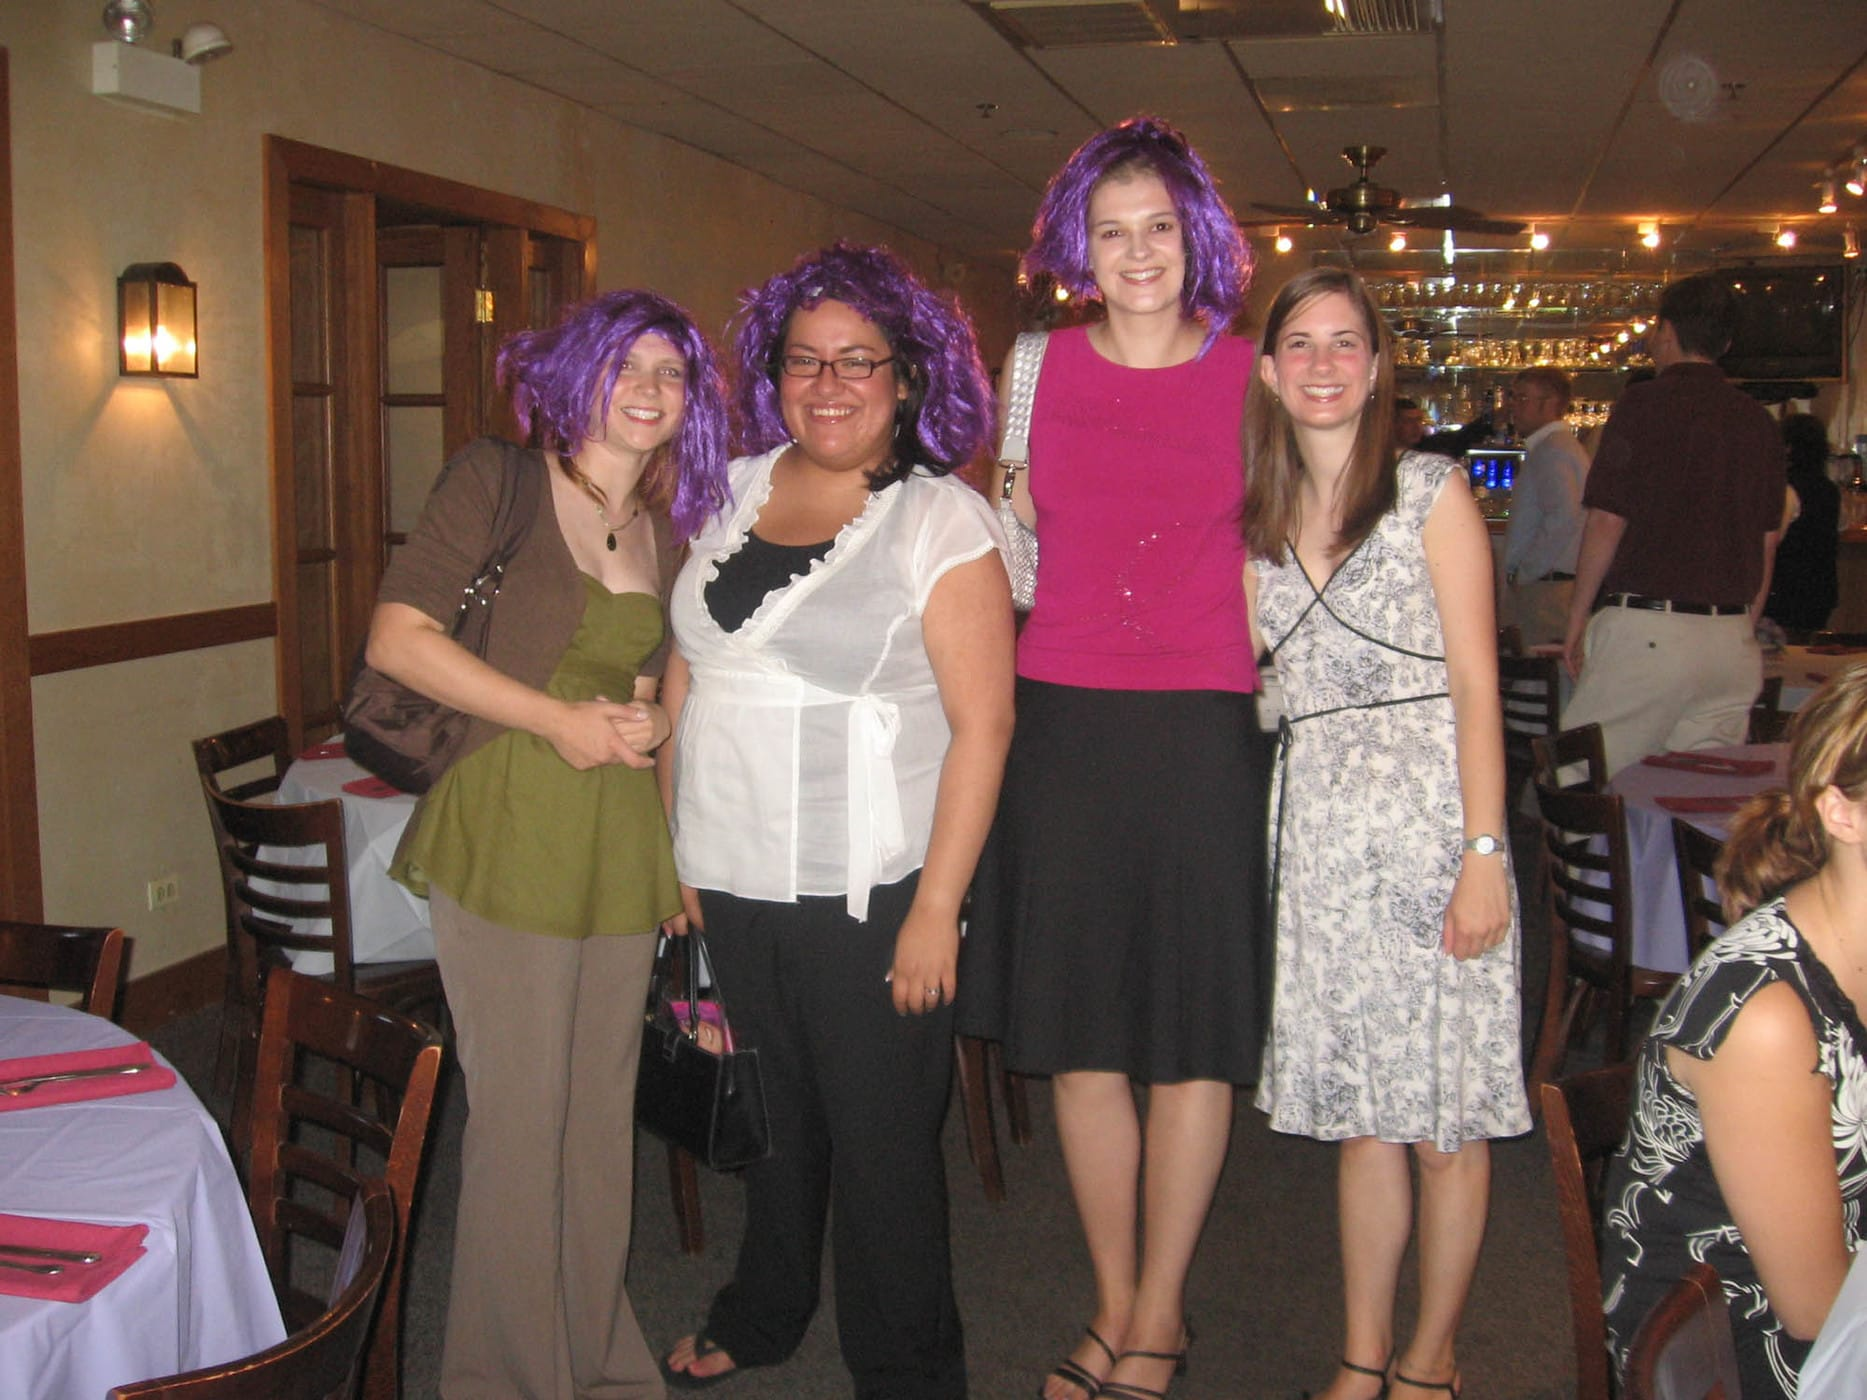 Bridesmaids in purple wigs.